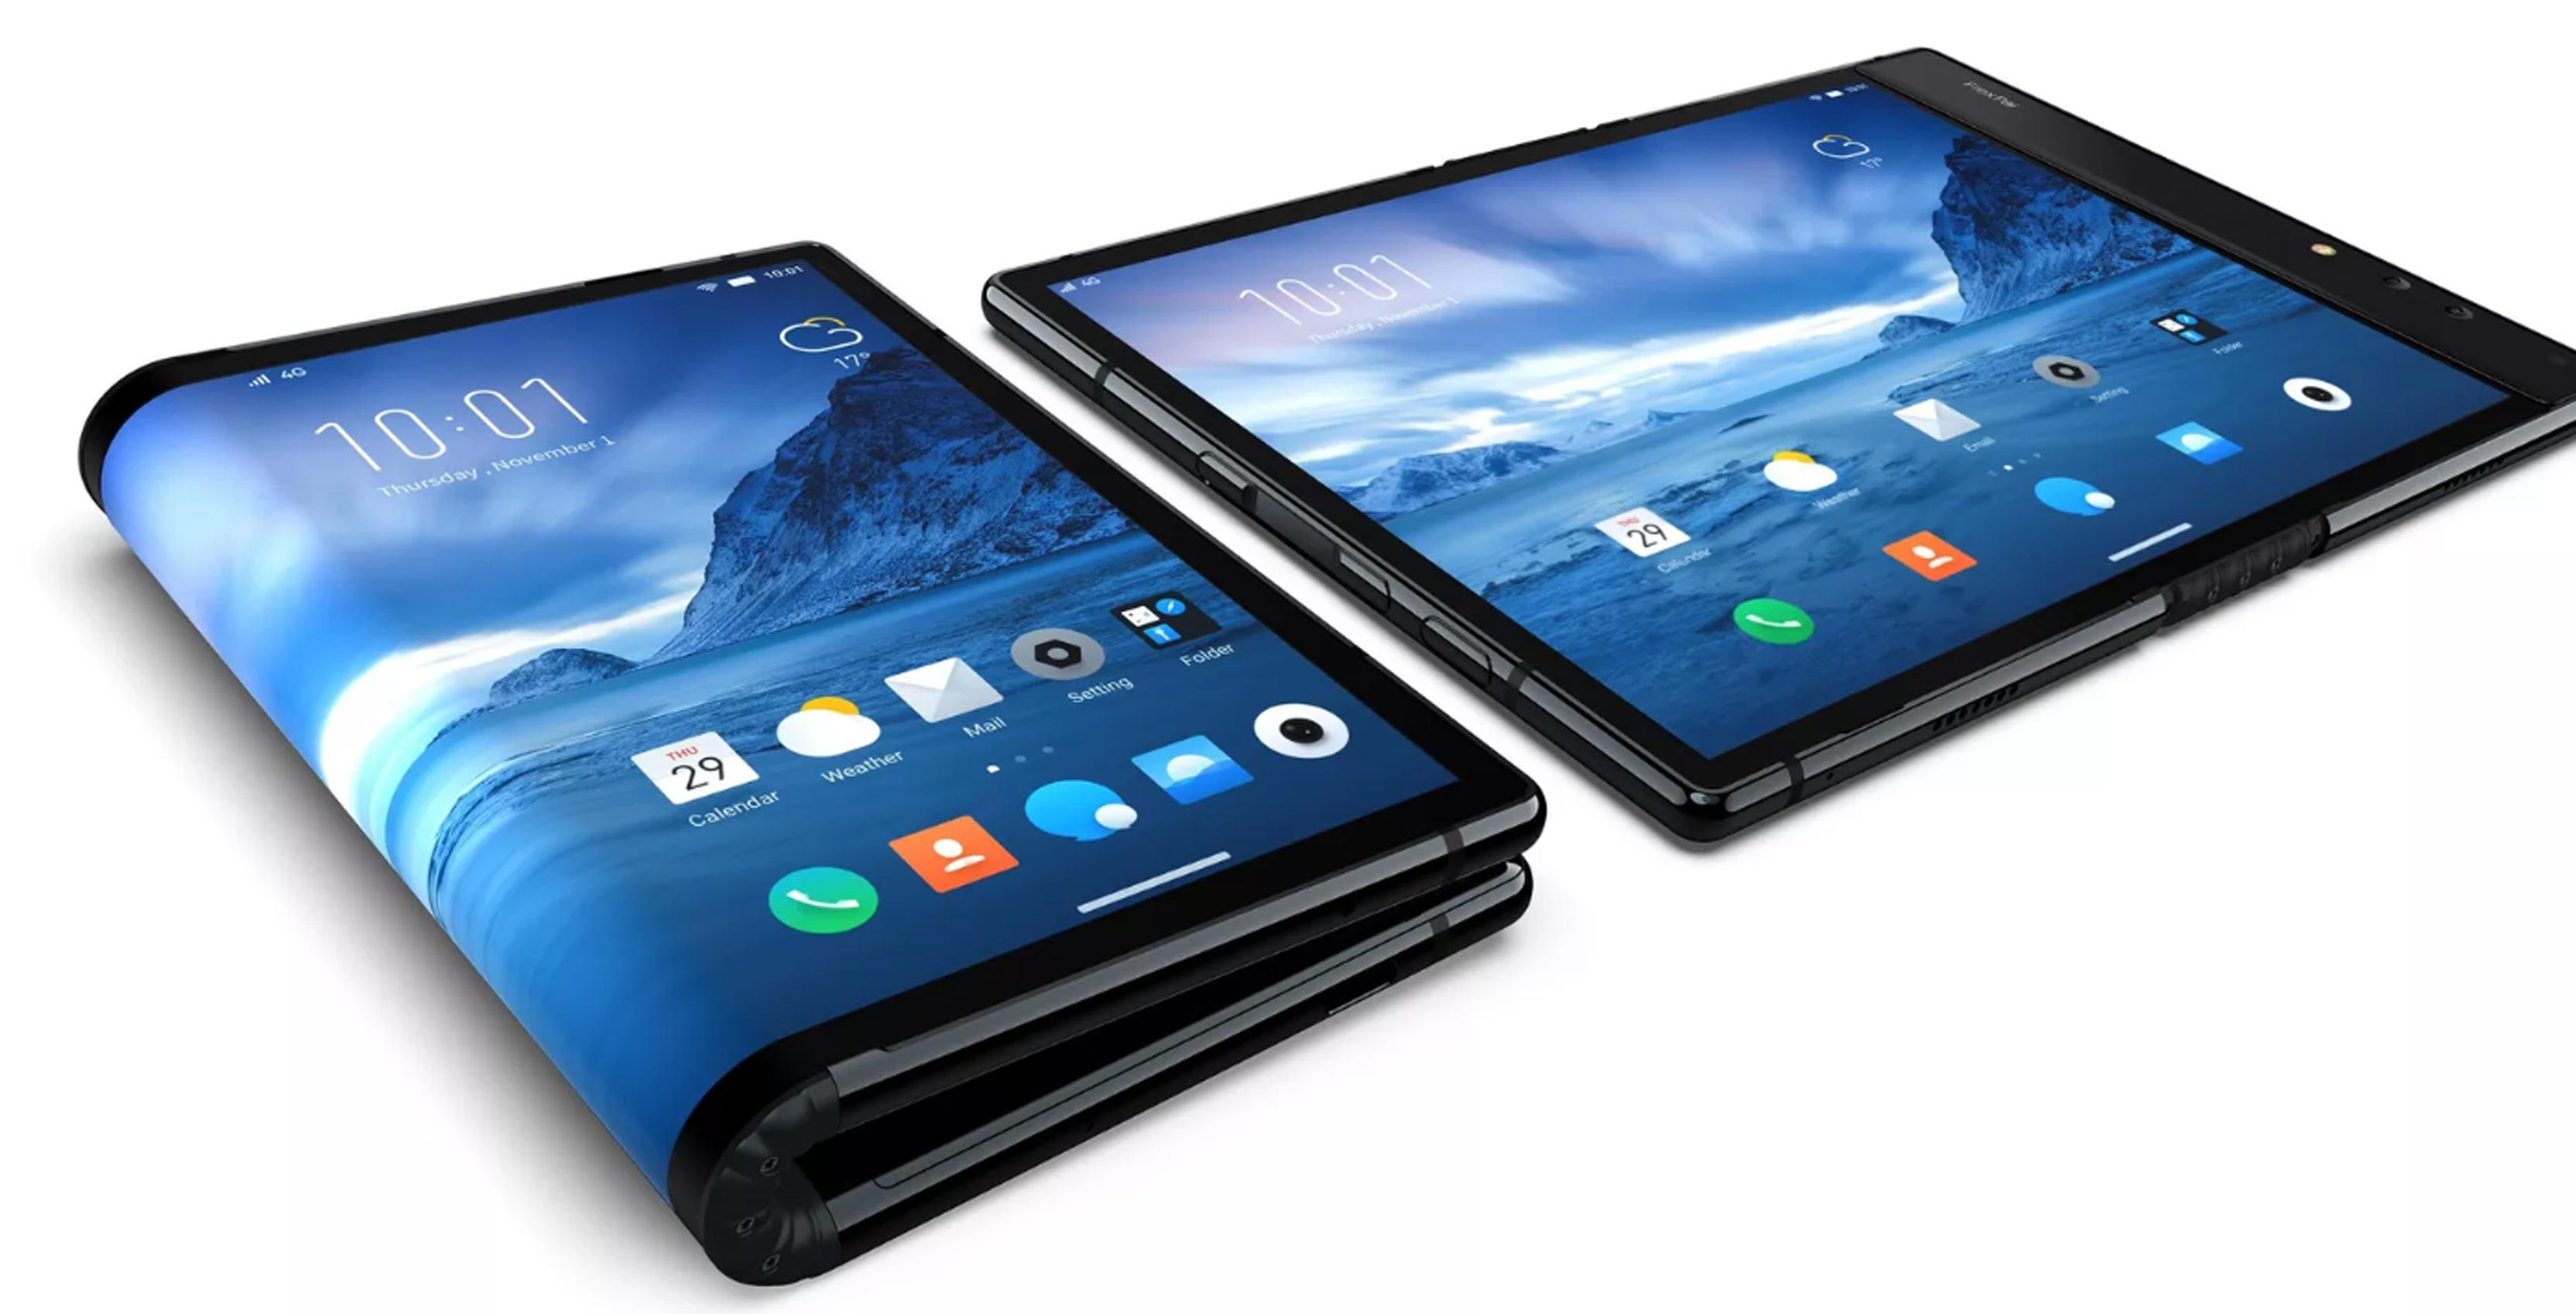 A California start-up beat Microsoft and Samsung to the foldable tablet/phone